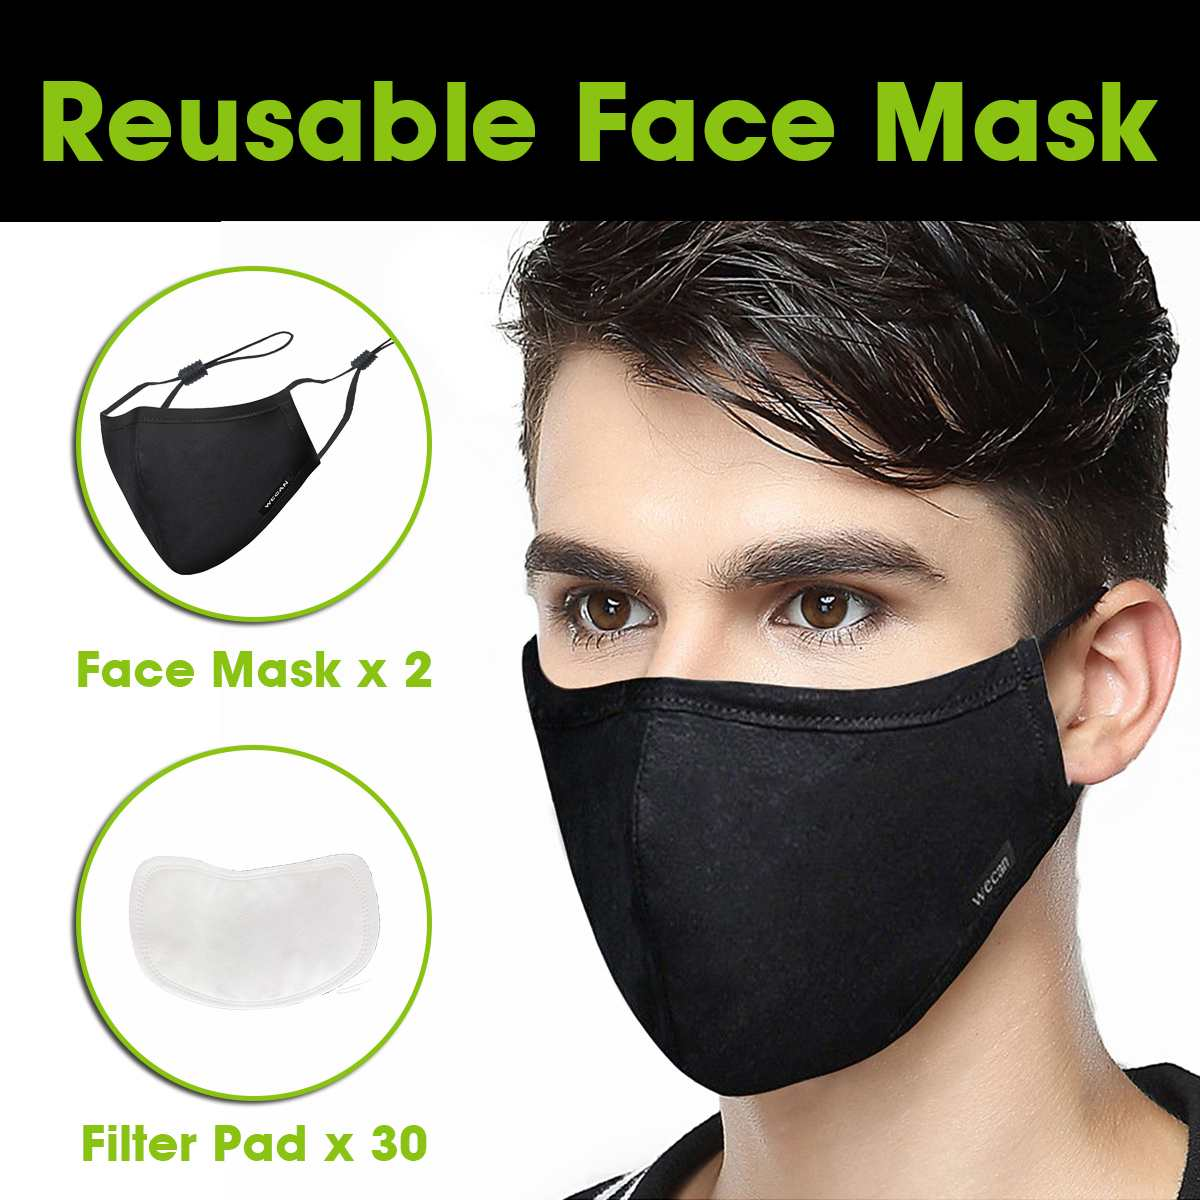 2x Reusable Anti-Dust Profession Disposable Mask With 30x Filter Elastic Mouth Breathable Flu Hygiene Face Ship With 24h